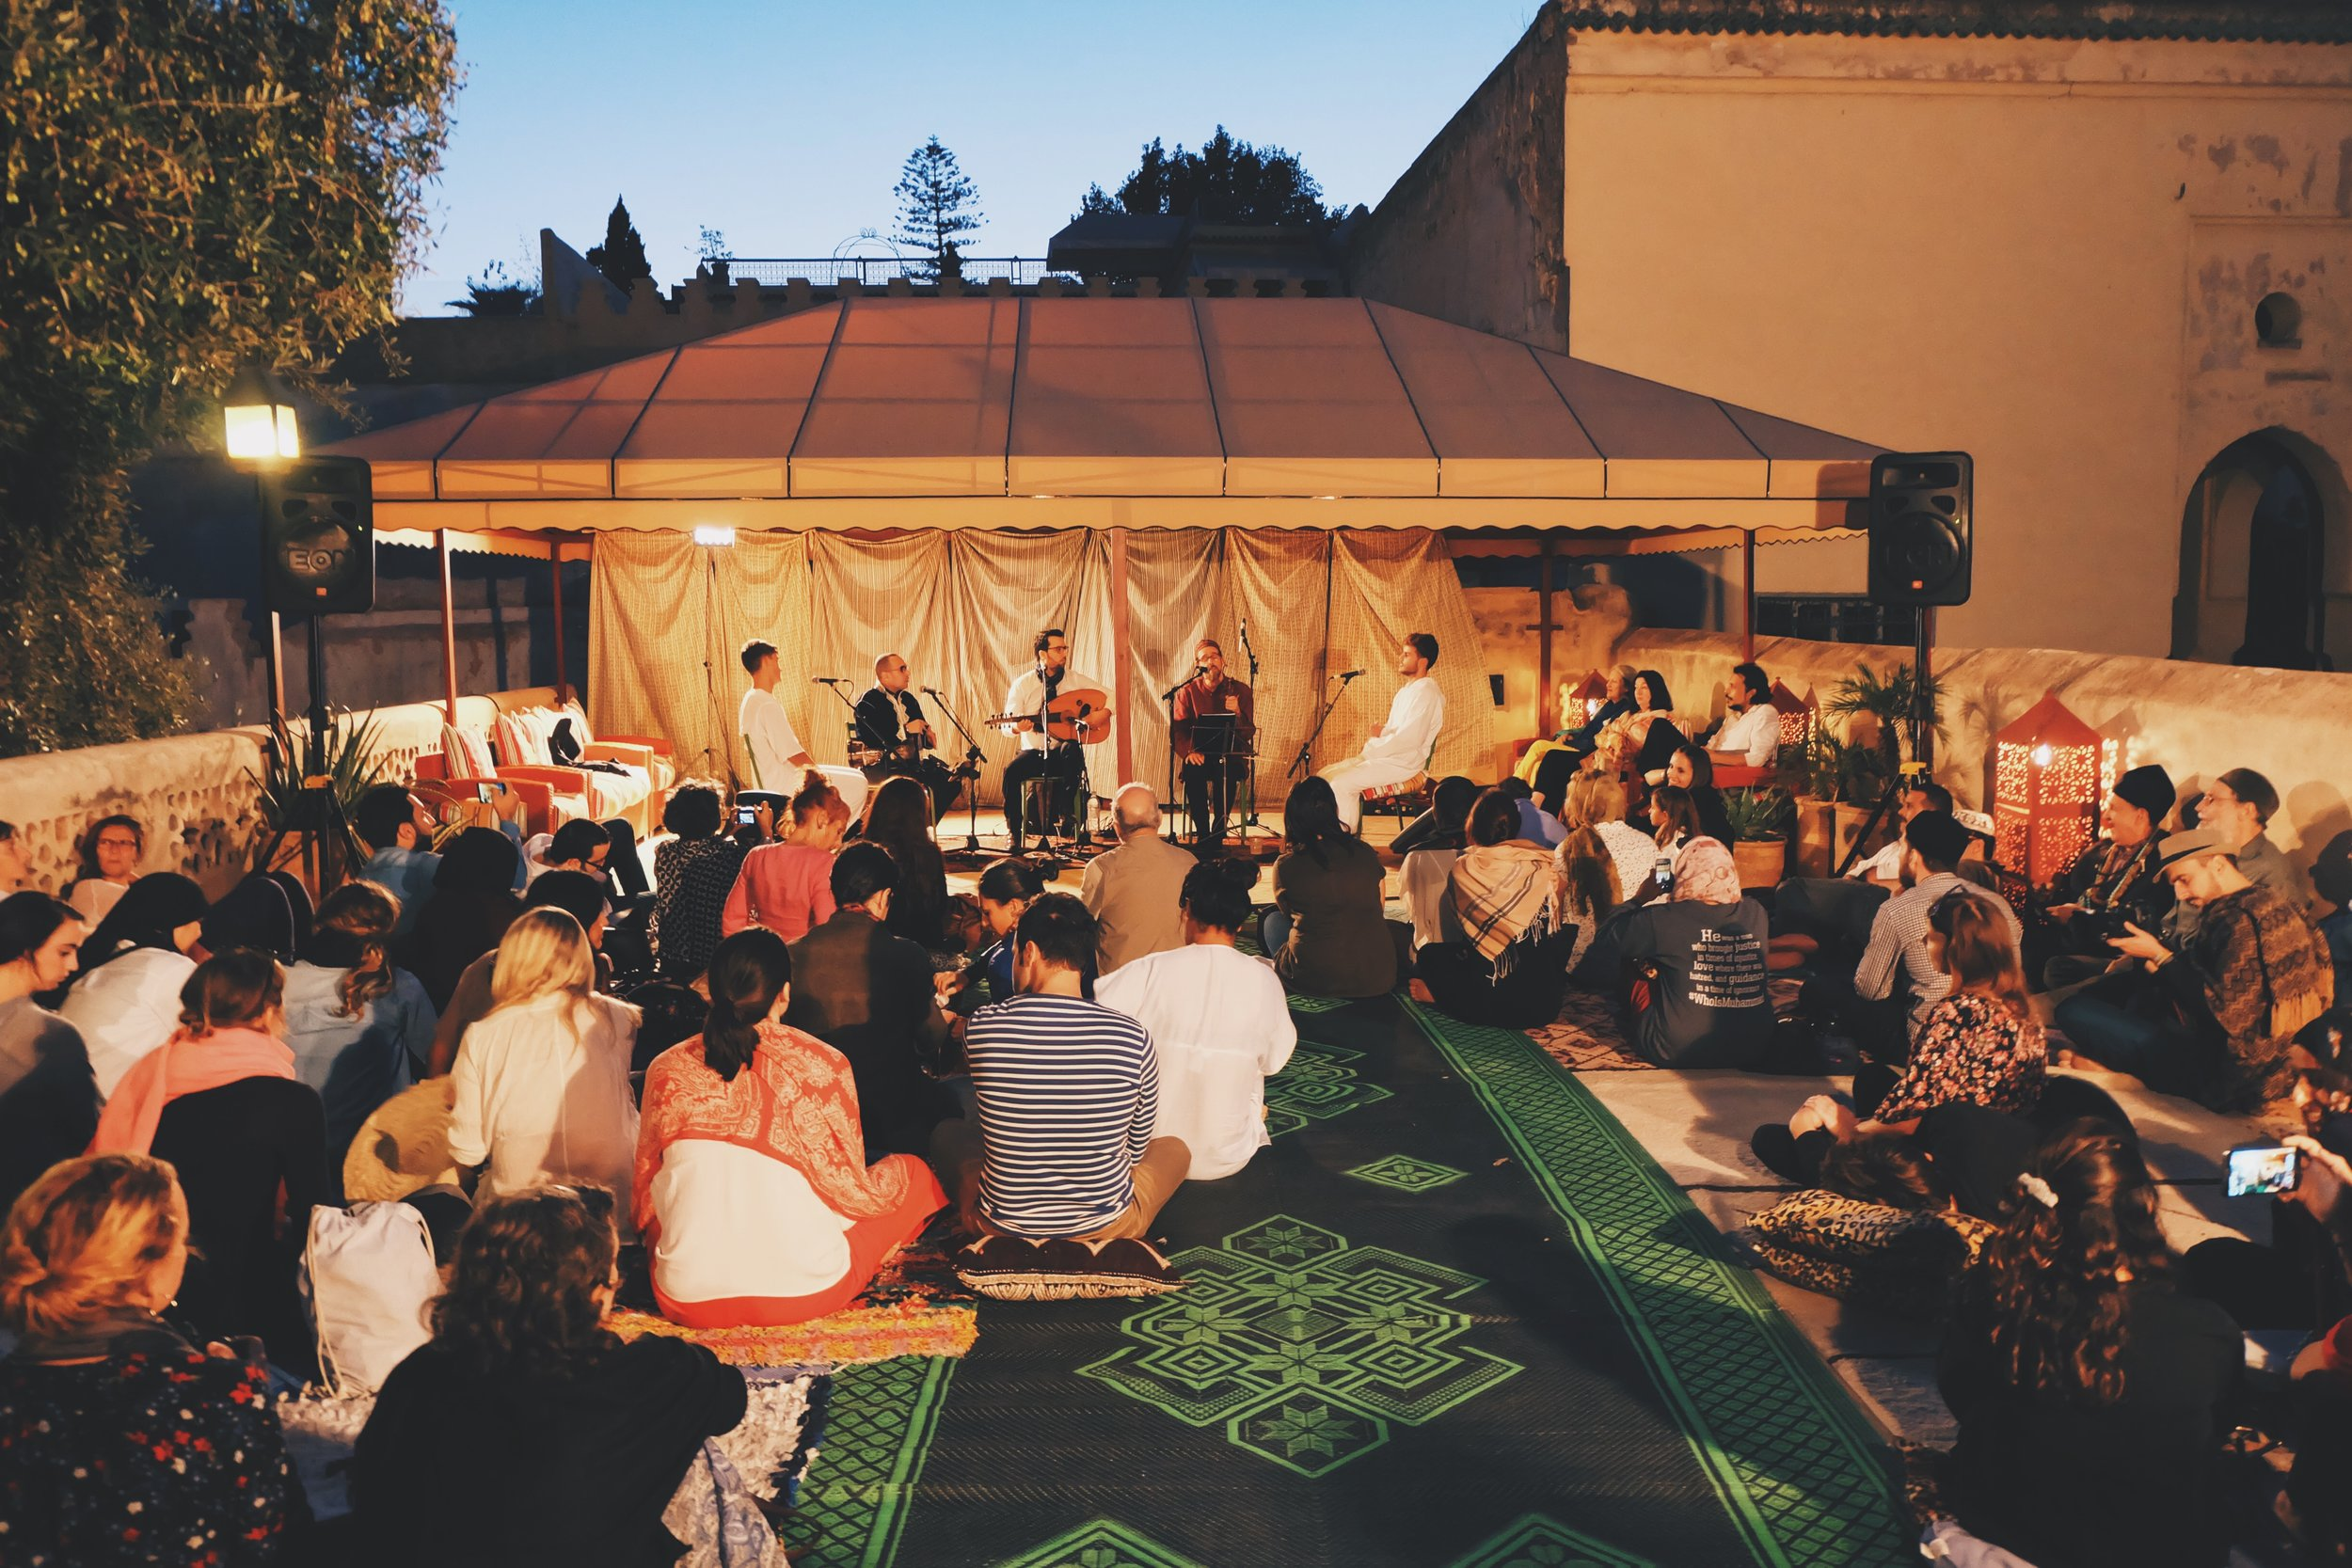 Sufi Concert at the Fez Cafe